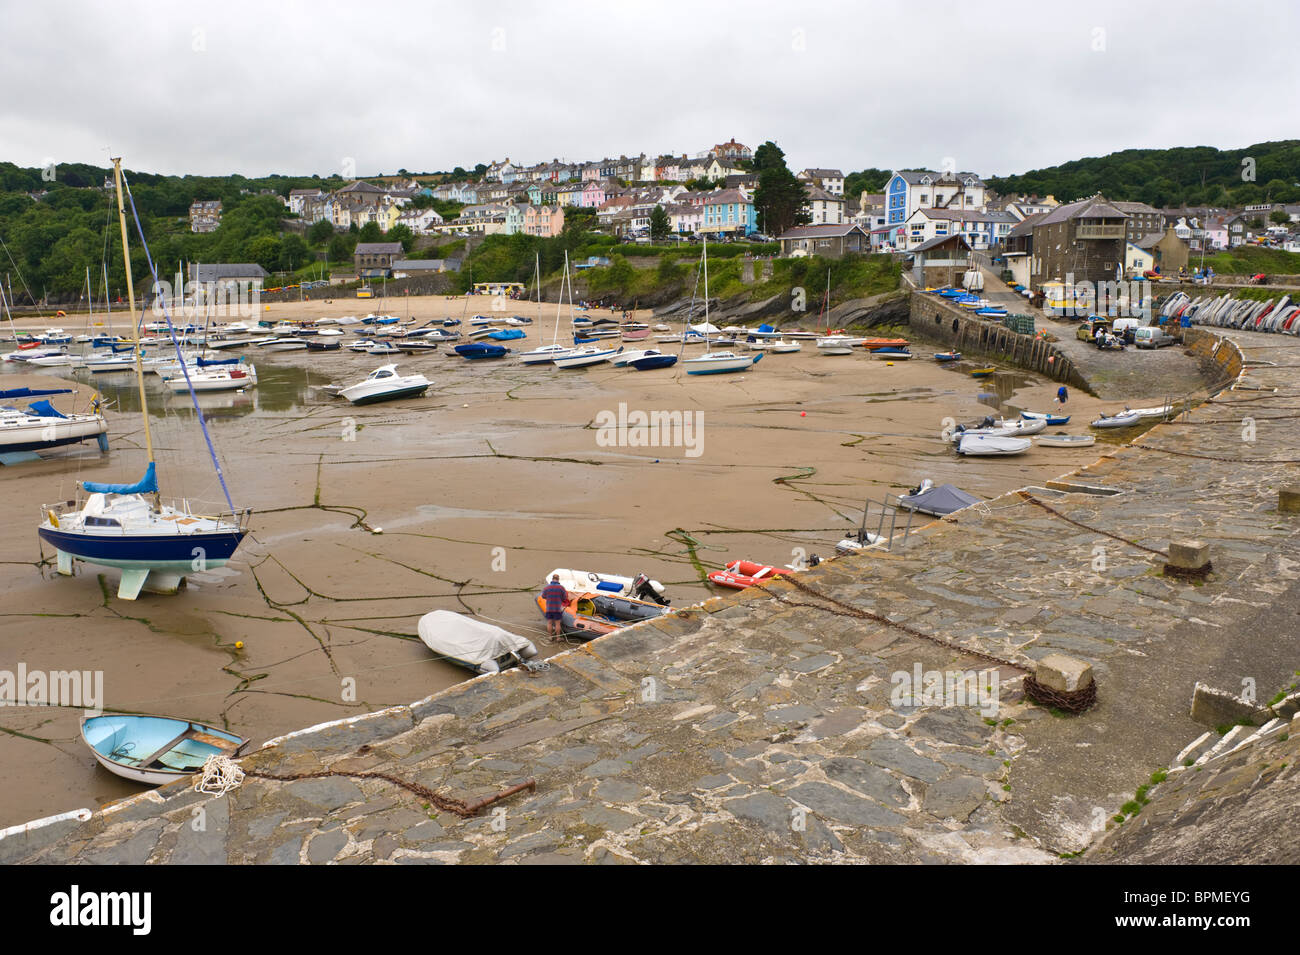 View over picturesque harbour in the Welsh seaside holiday resort of New Quay Ceredigion West Wales UK Stock Photo